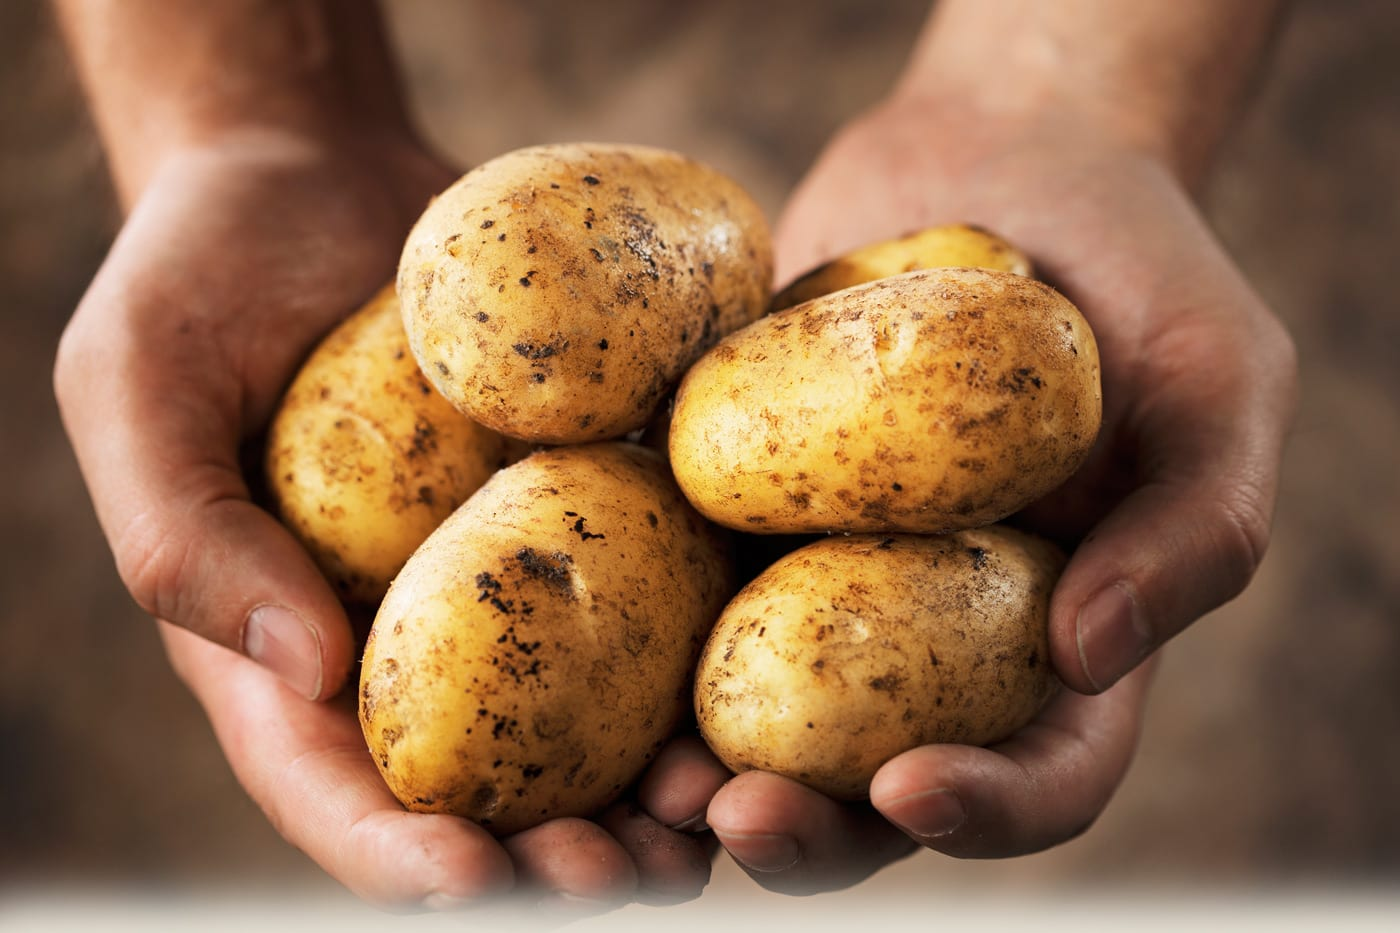 Glyphosate on Potatoes